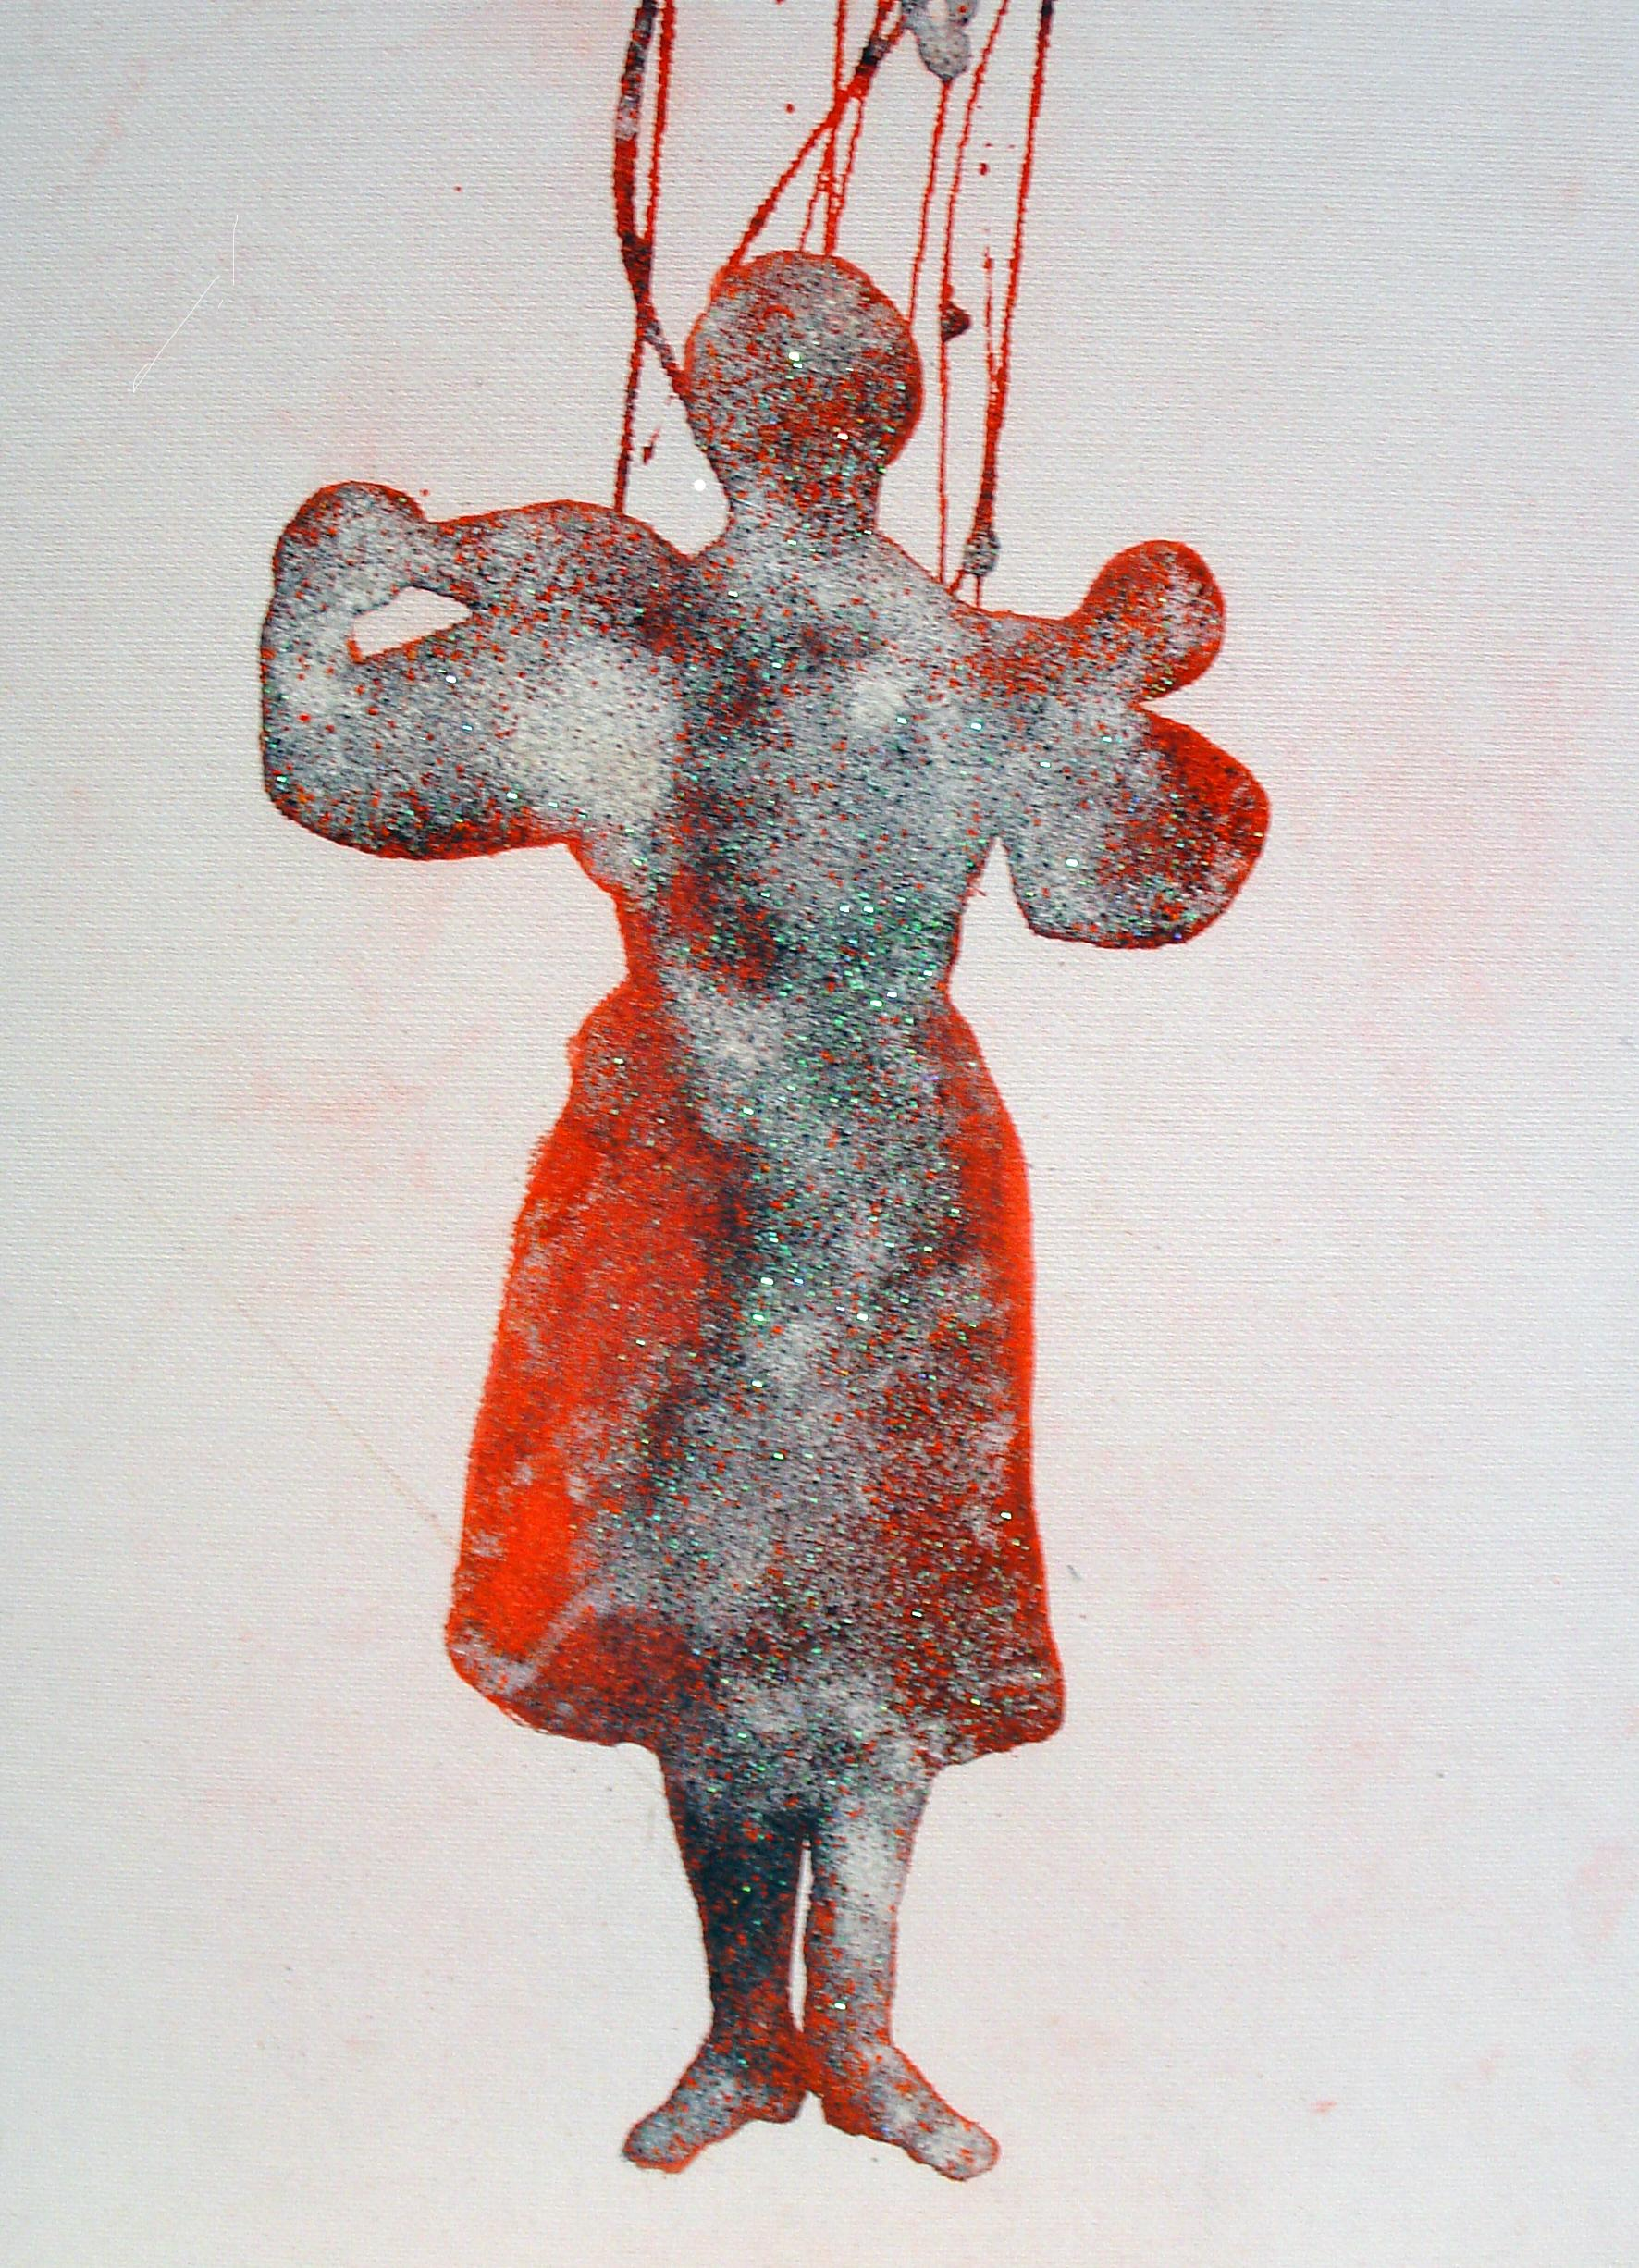 UNTITLED (Dancer)